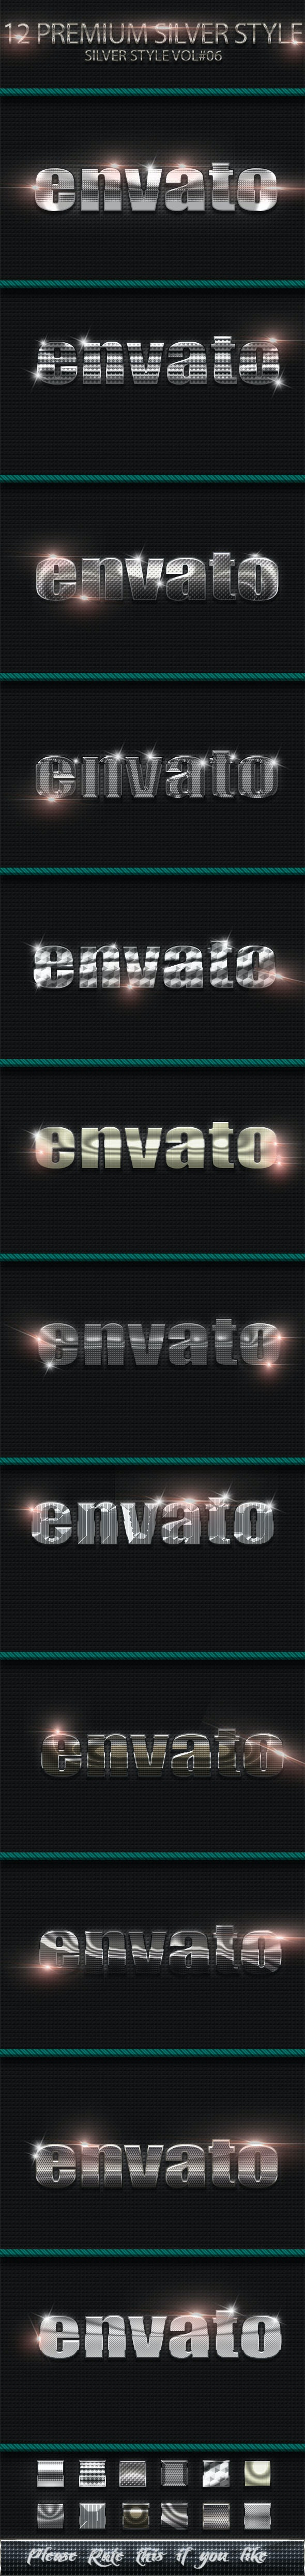 12 Photoshop Text Effect Styles Vol 6 - Text Effects Styles